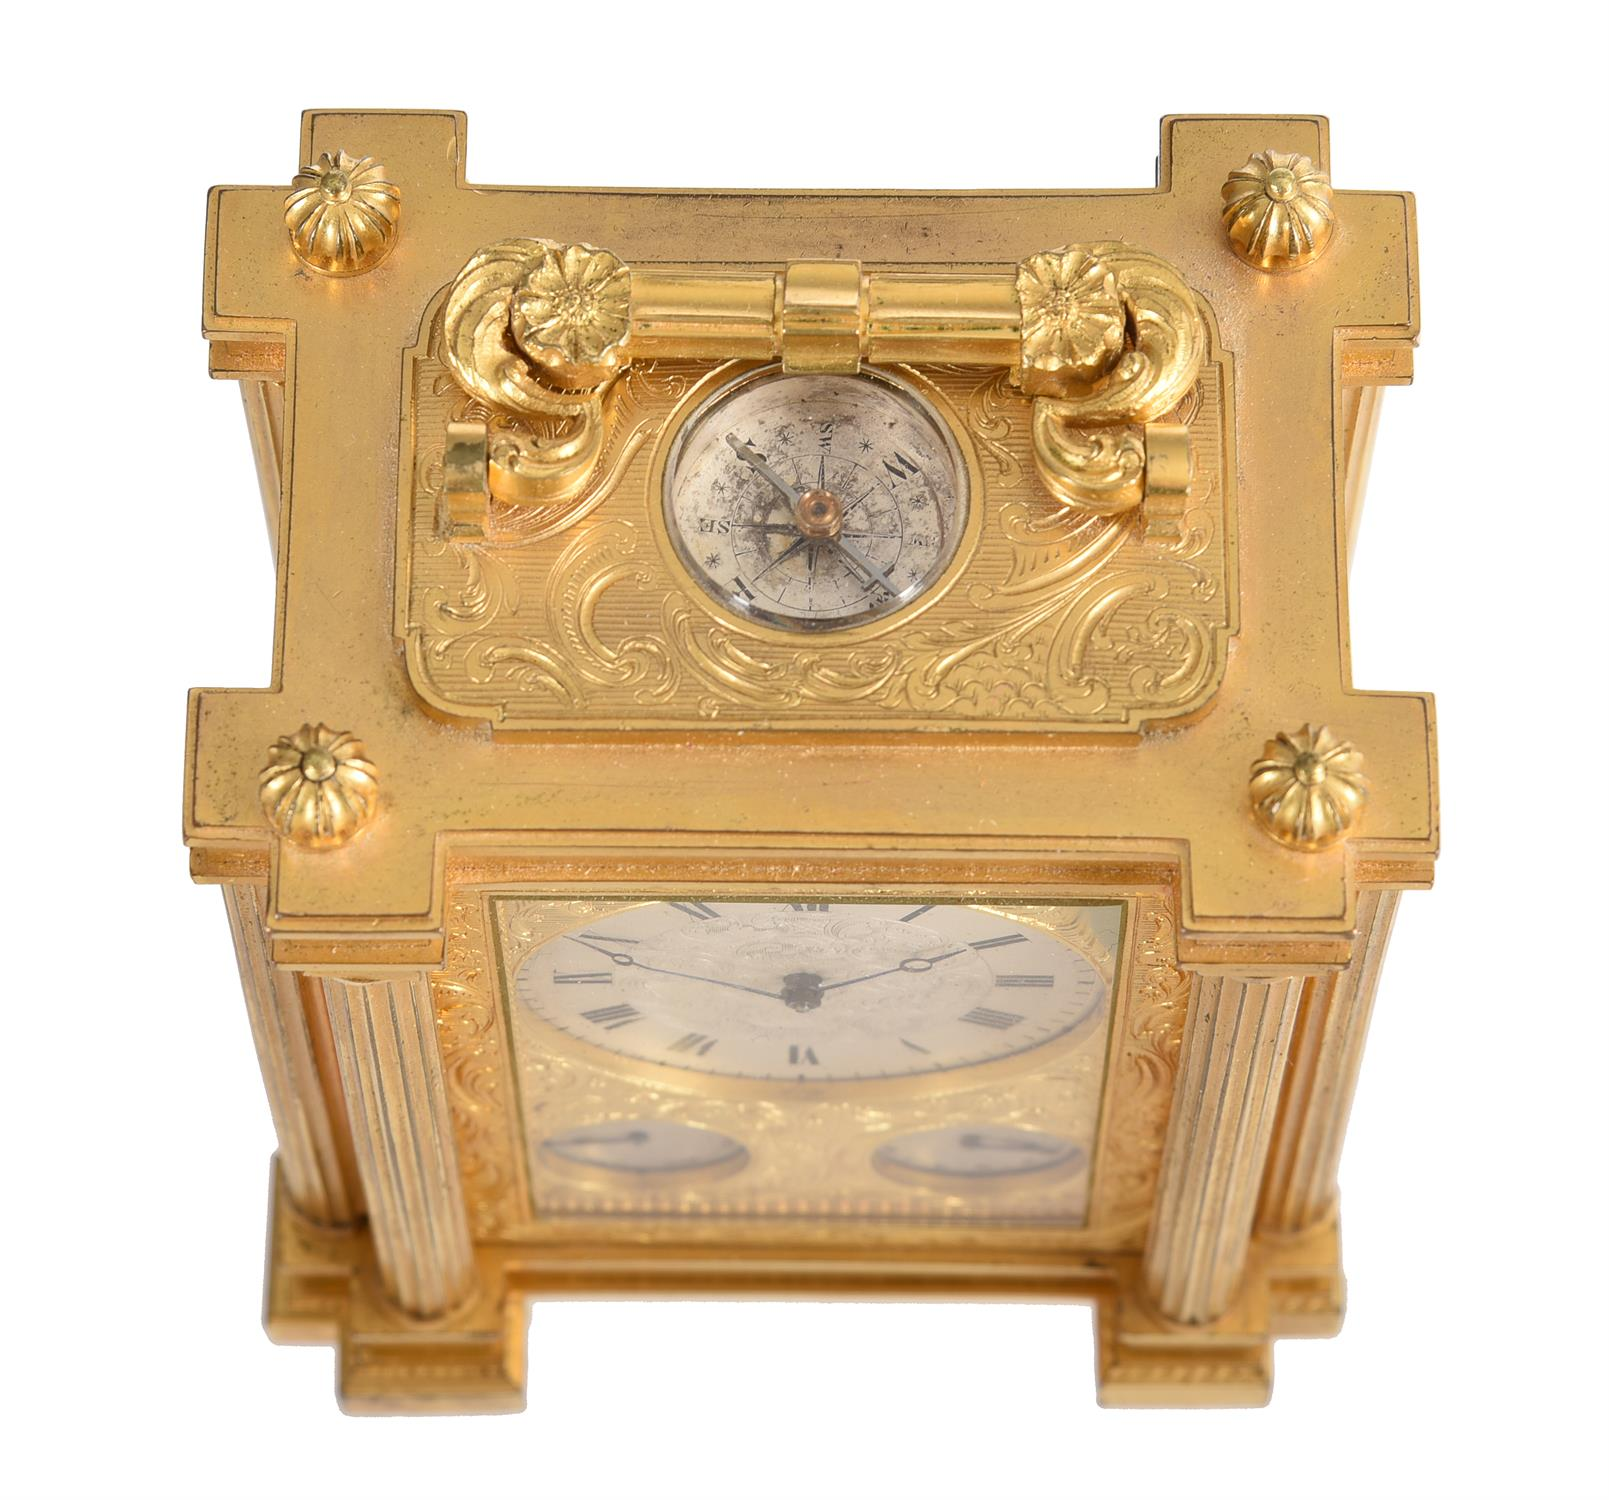 A fine small early Victorian engraved gilt brass small calendar carriage timepiece with twin thermom - Image 3 of 14